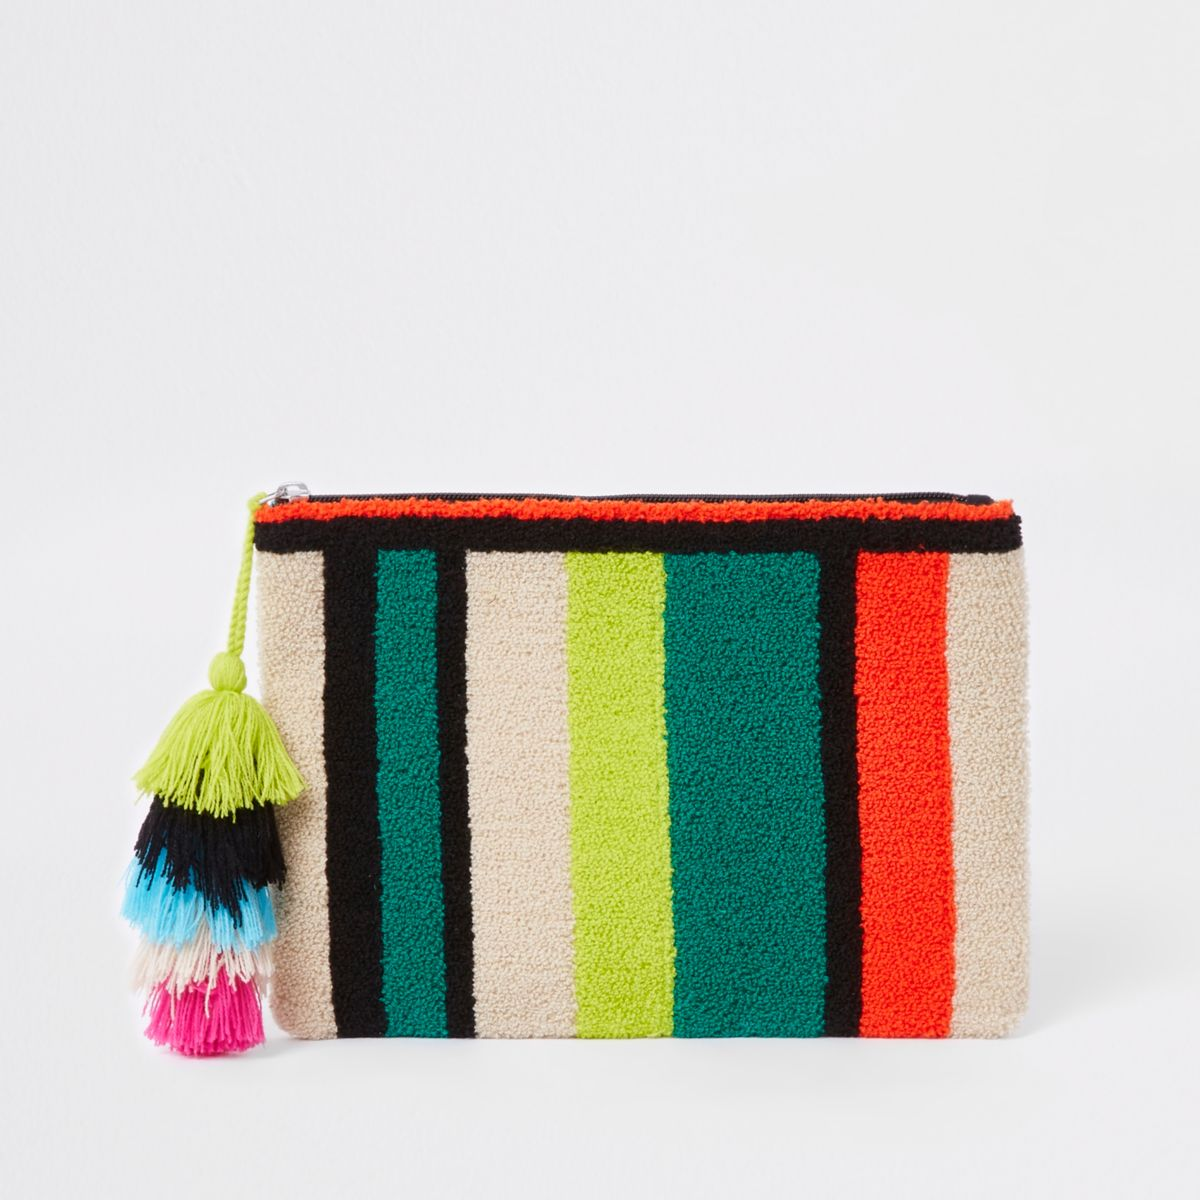 Green stripe tassel suede pouch clutch bag